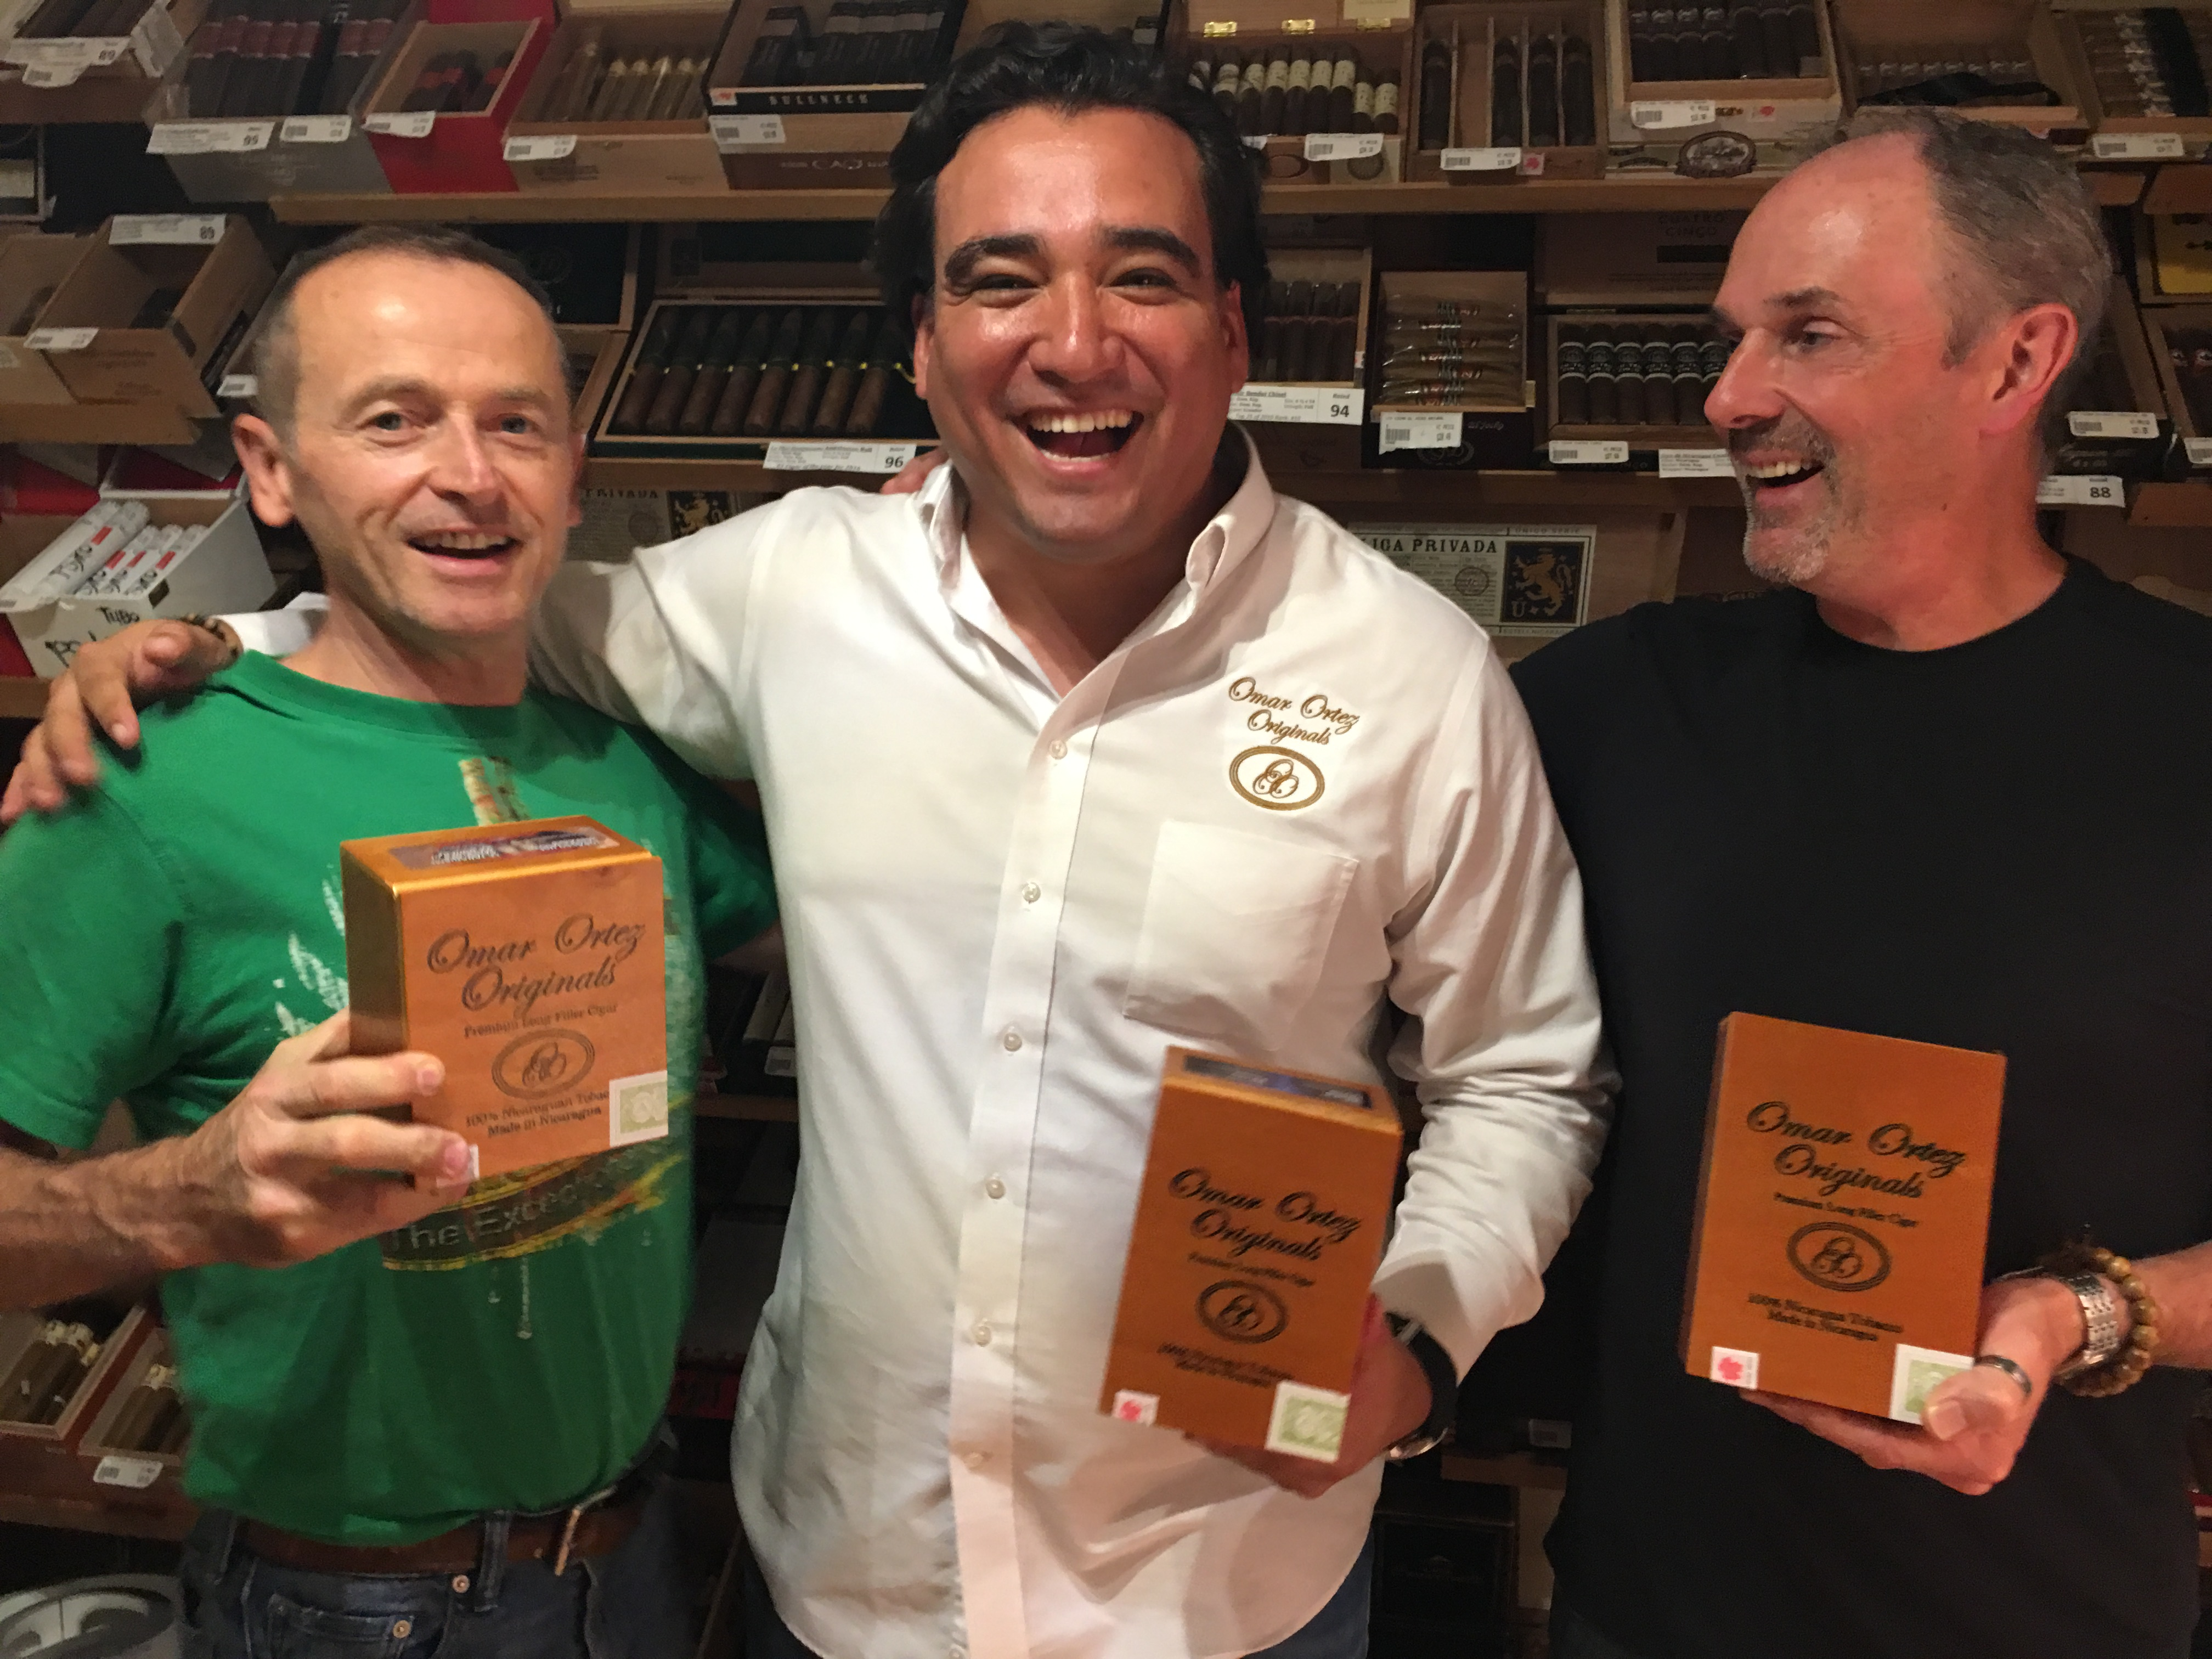 The Victory boys with Omar in the humidor.